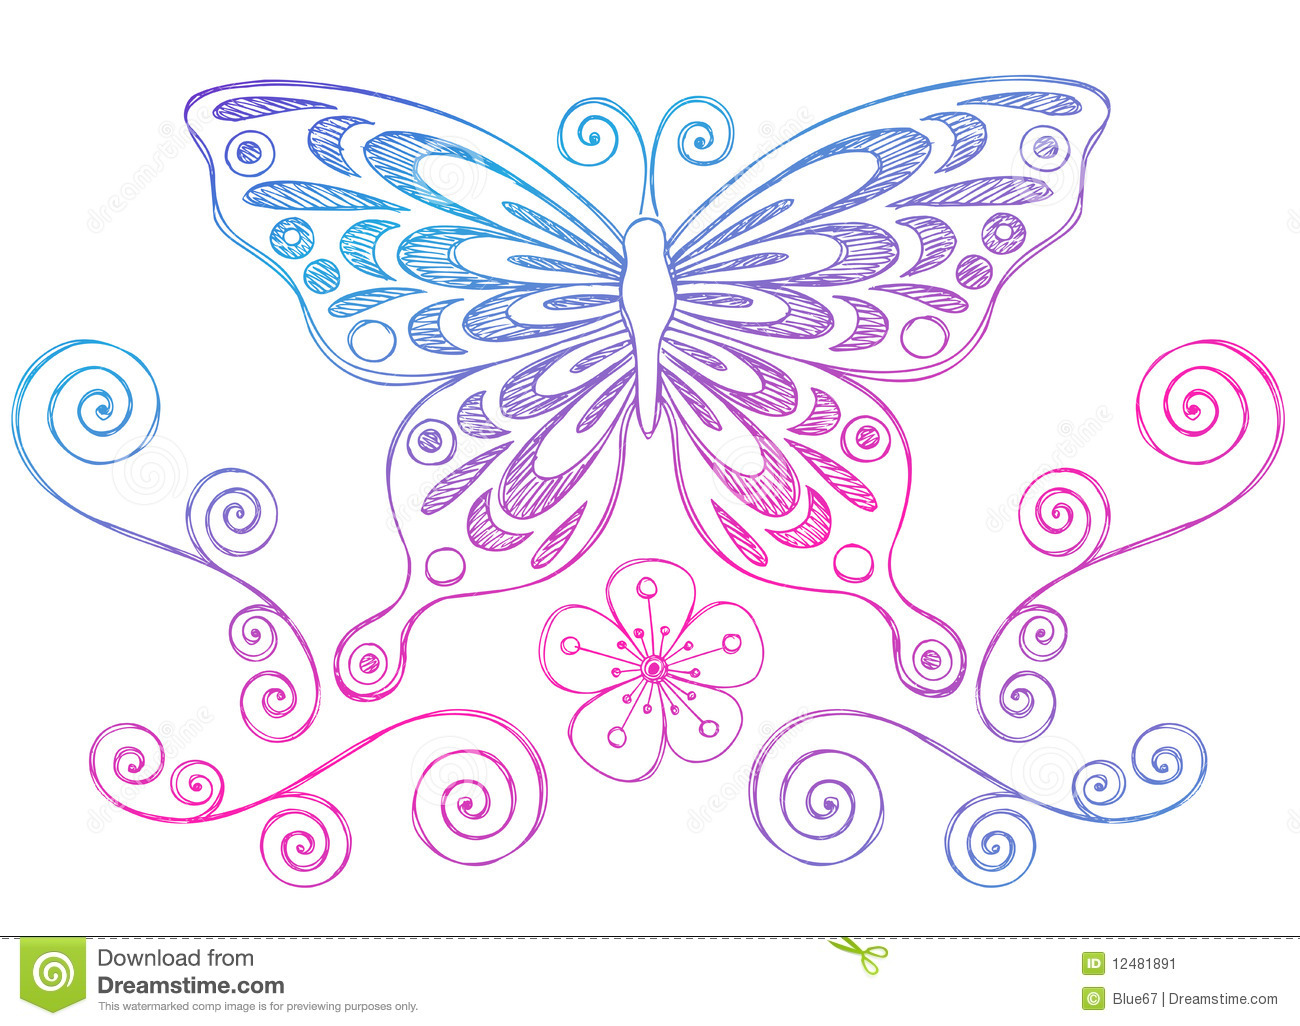 Sketchy notebook doodles butterfly and swirls stock vector for Decoraciones para hojas